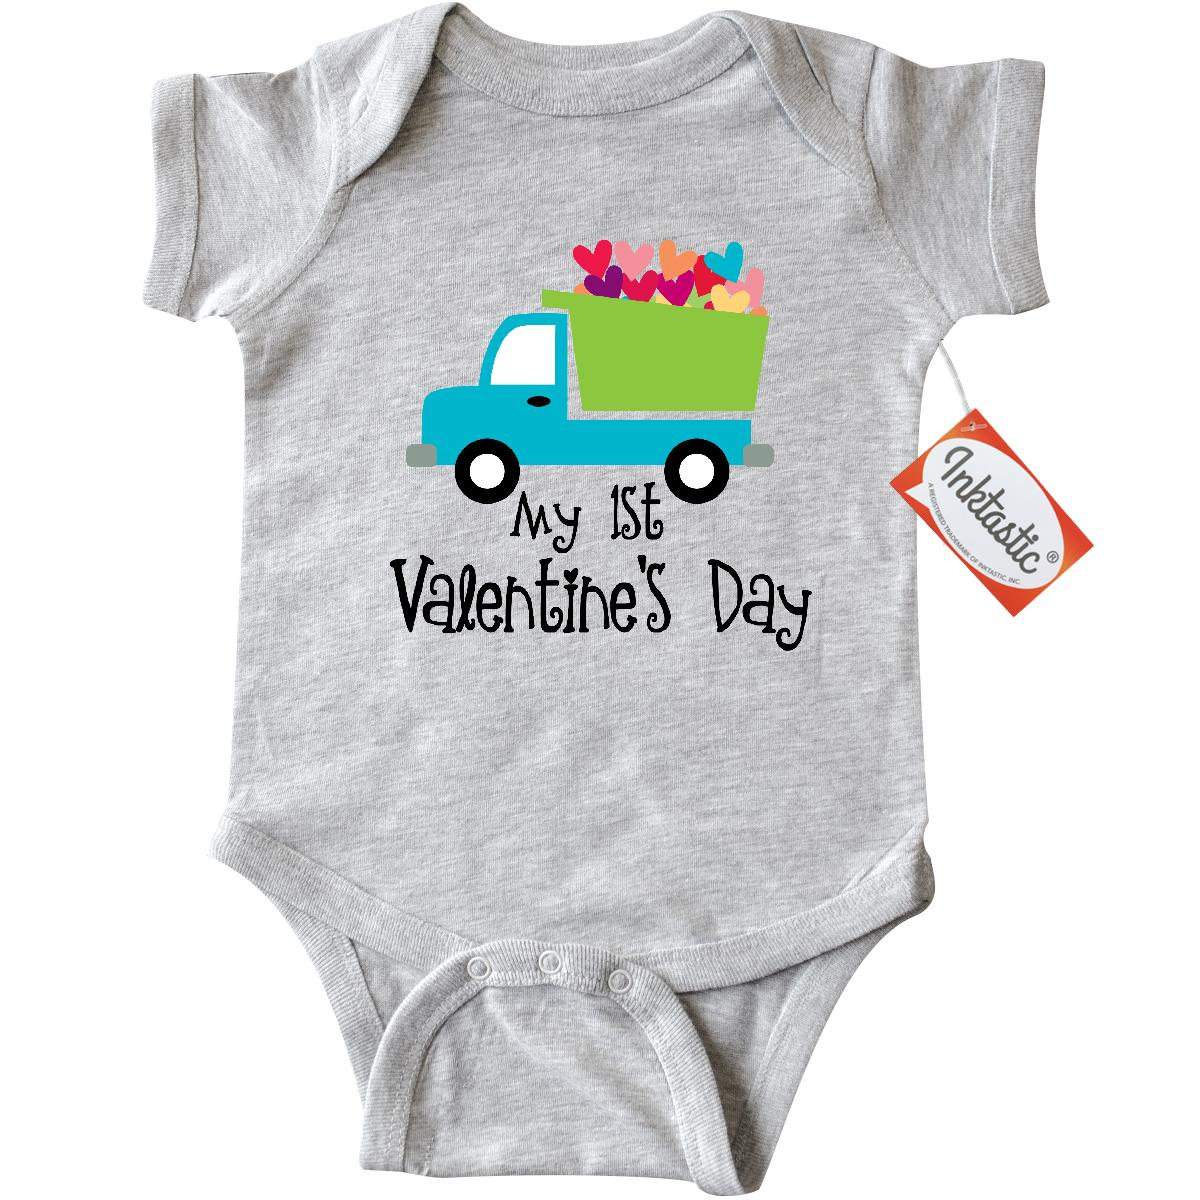 Inktastic 1st Valentines Day Hearts Infant Creeper Baby Bodysuit babys first valentine kids cute love holiday truck boys gift one-piece hws